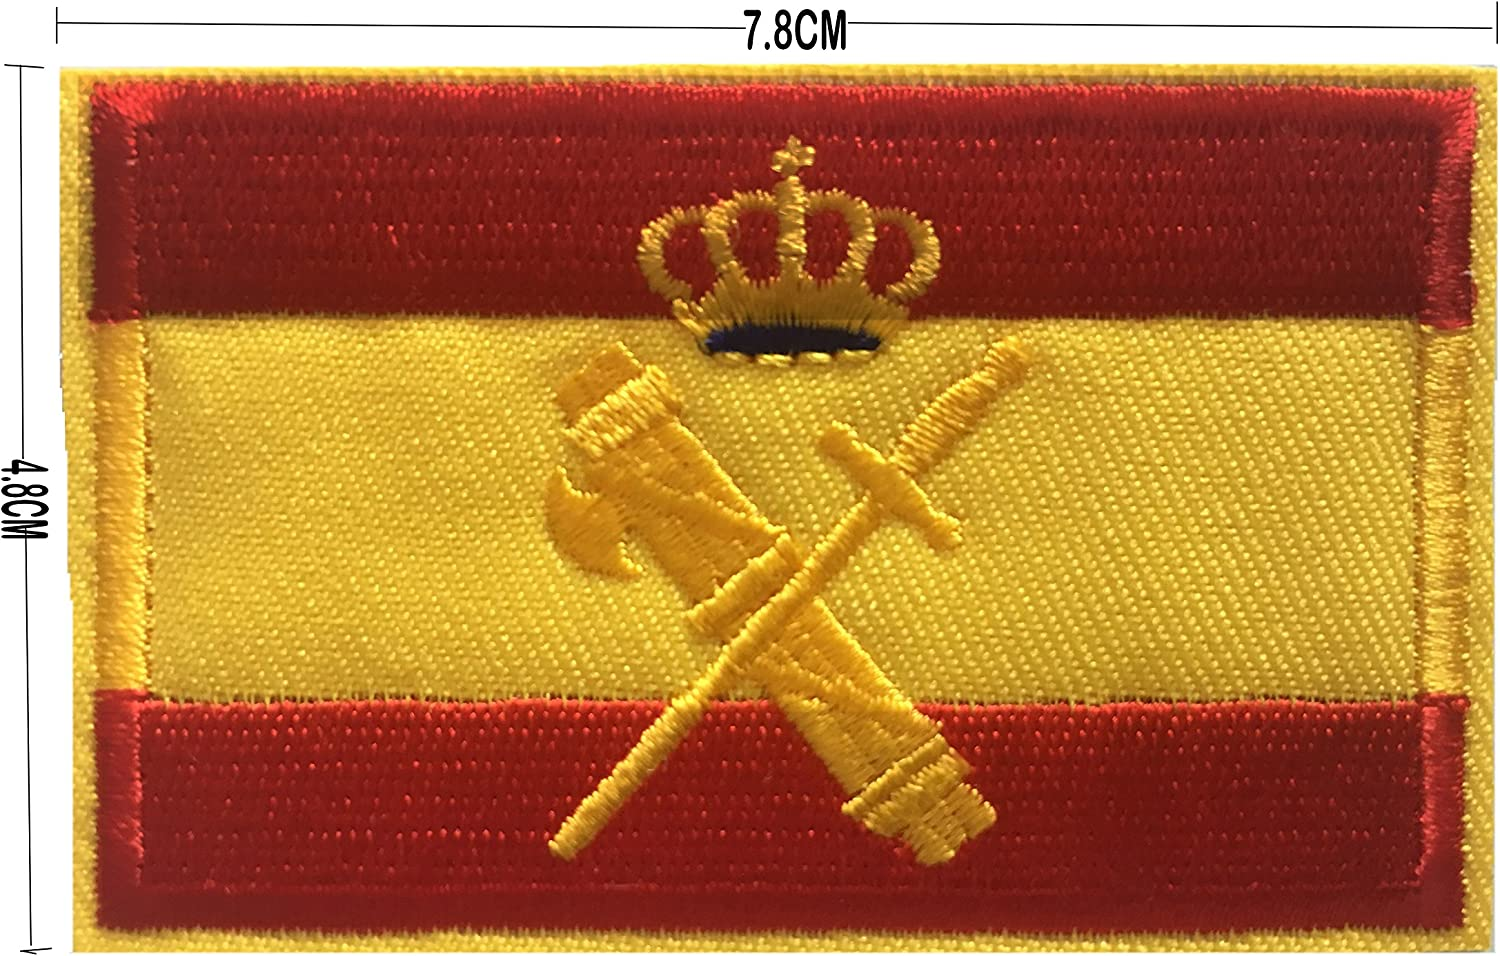 BANDERA DEL PARCHE BORDADO PARA PLANCHAR O COSER (Guardia Civil 7.8cm): Amazon.es: Hogar